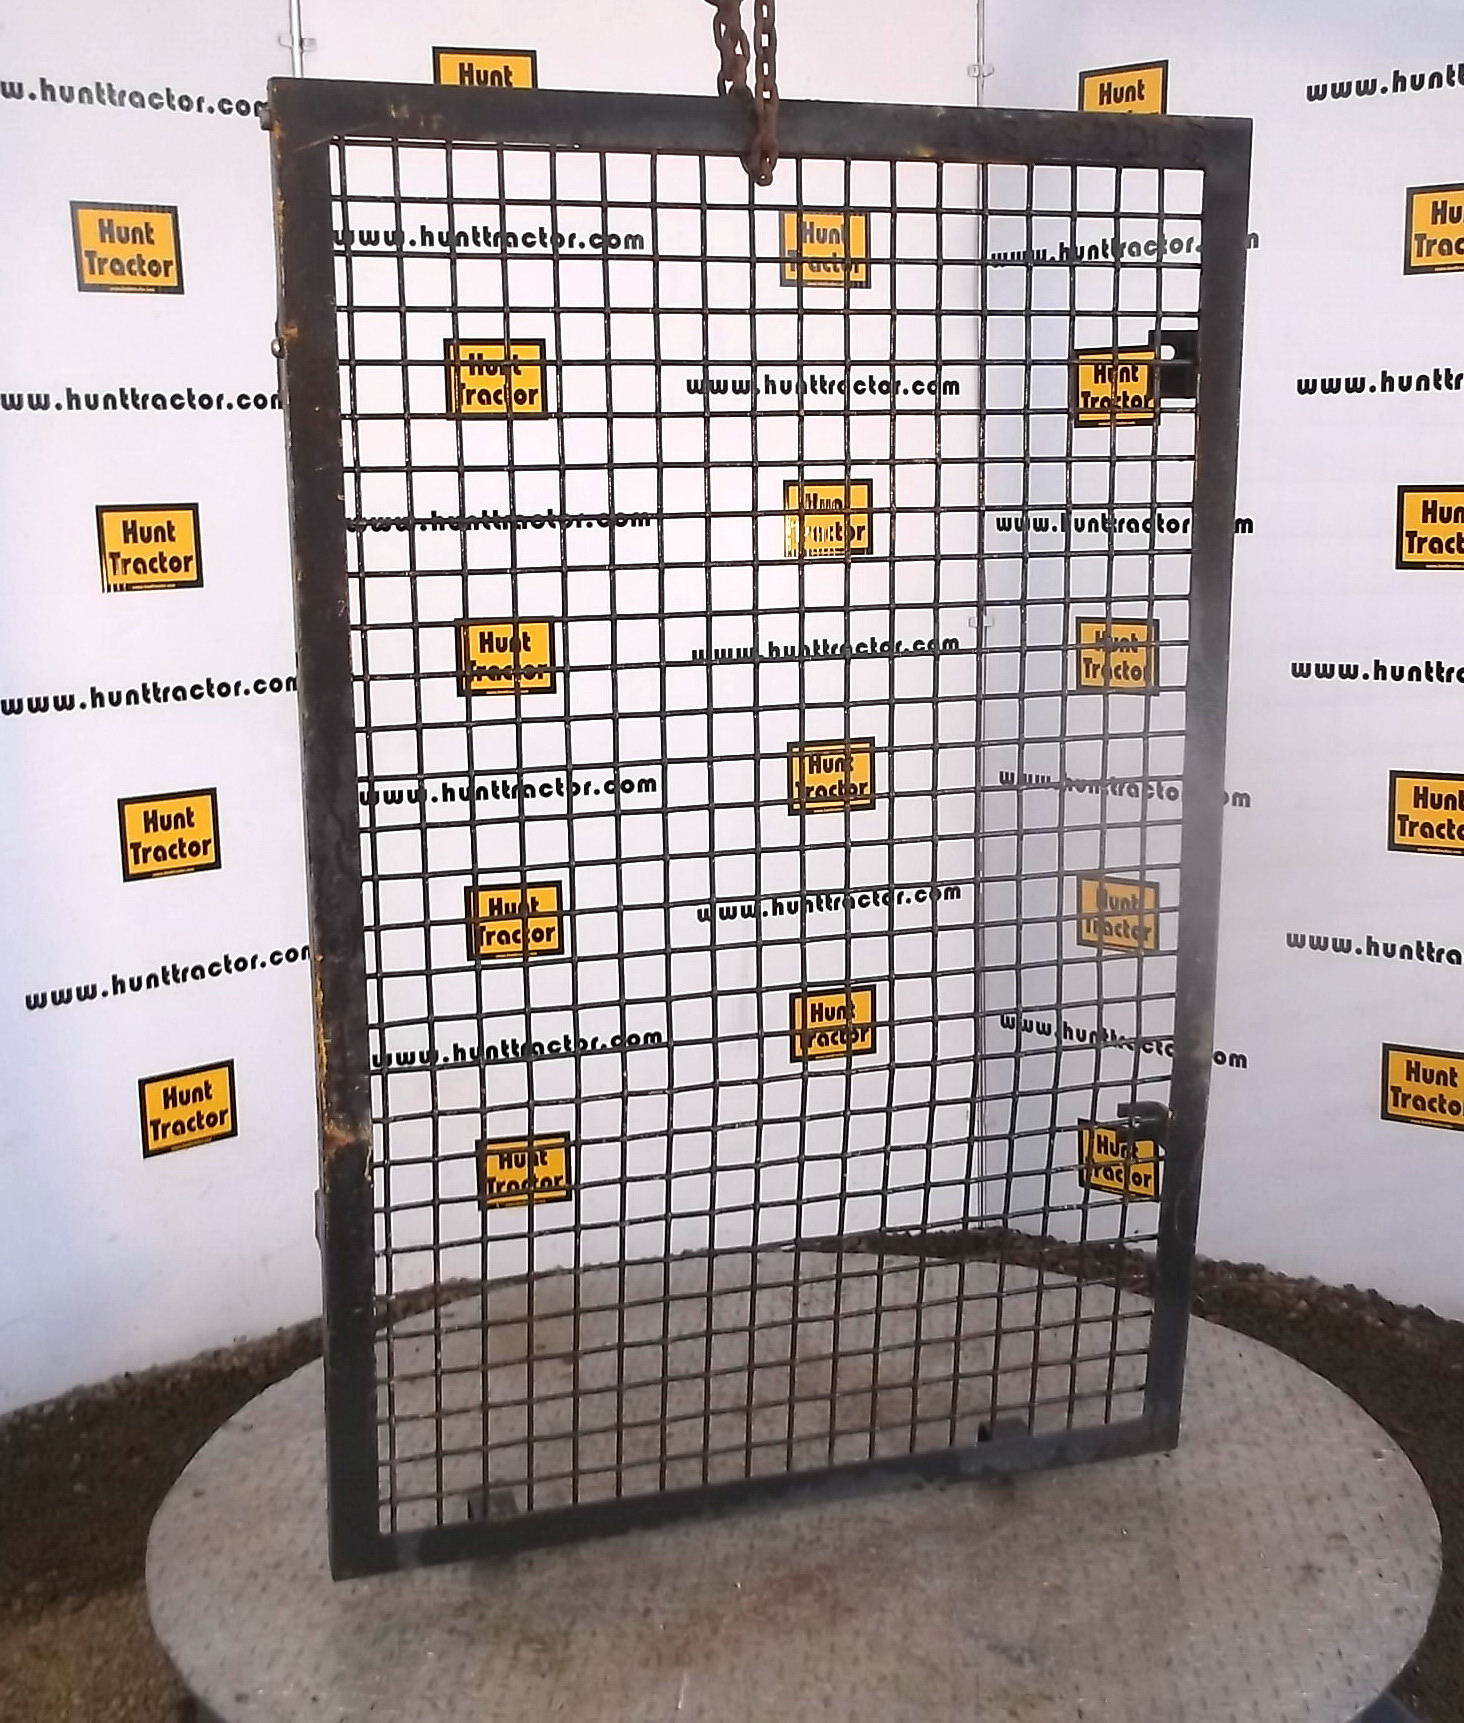 Used front window screen for sale for Window screens for sale